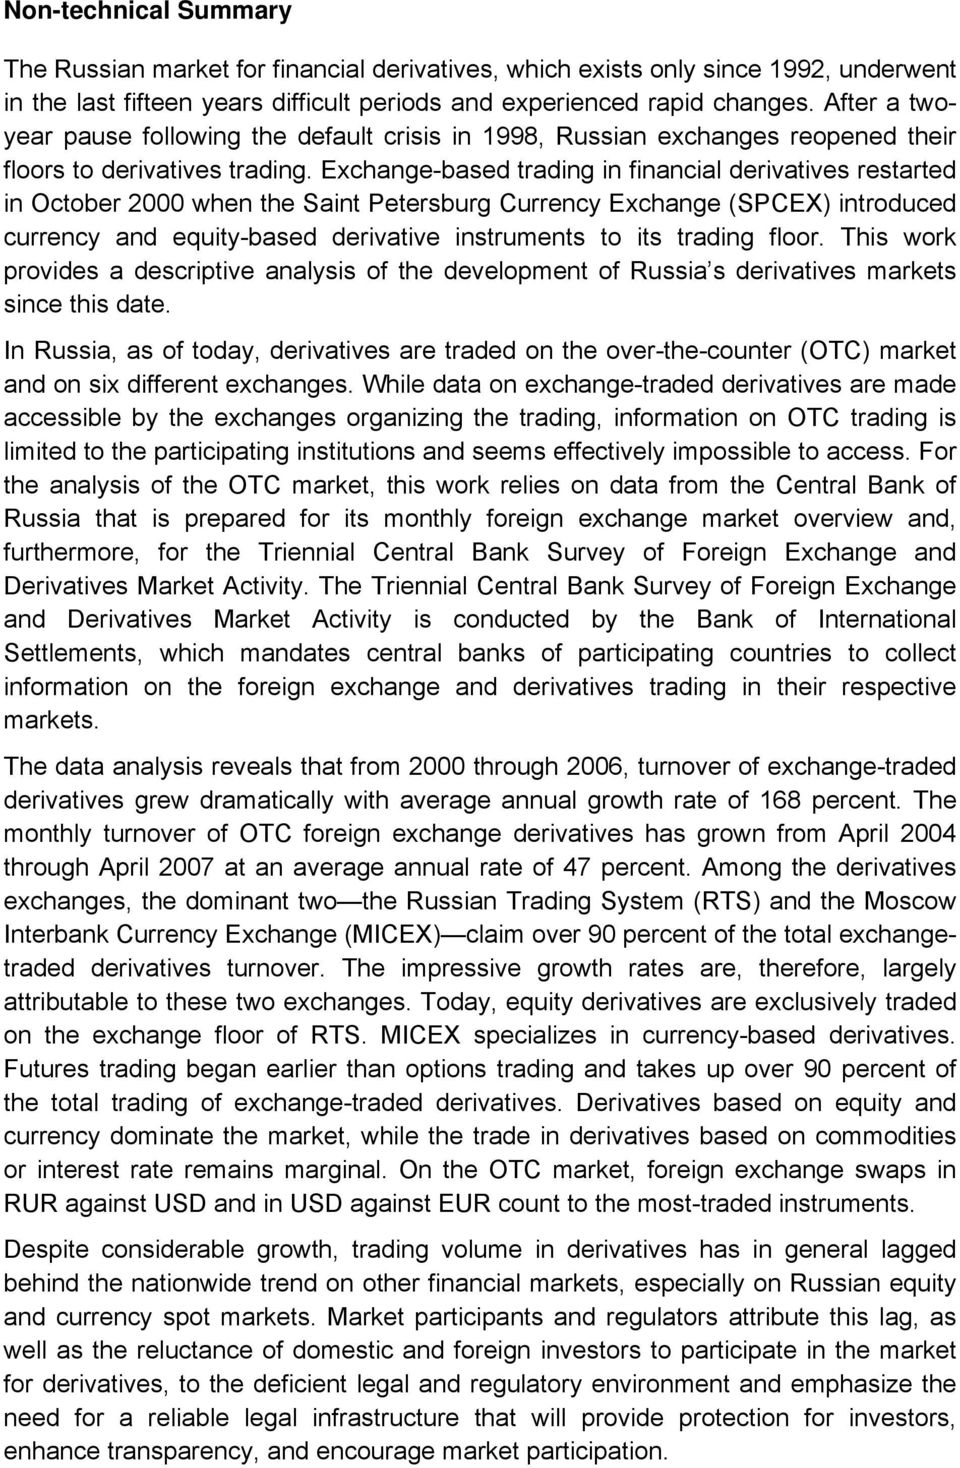 Exchange-based trading in financial derivatives restarted in October 2000 when the Saint Petersburg Currency Exchange (SPCEX) introduced currency and equity-based derivative instruments to its